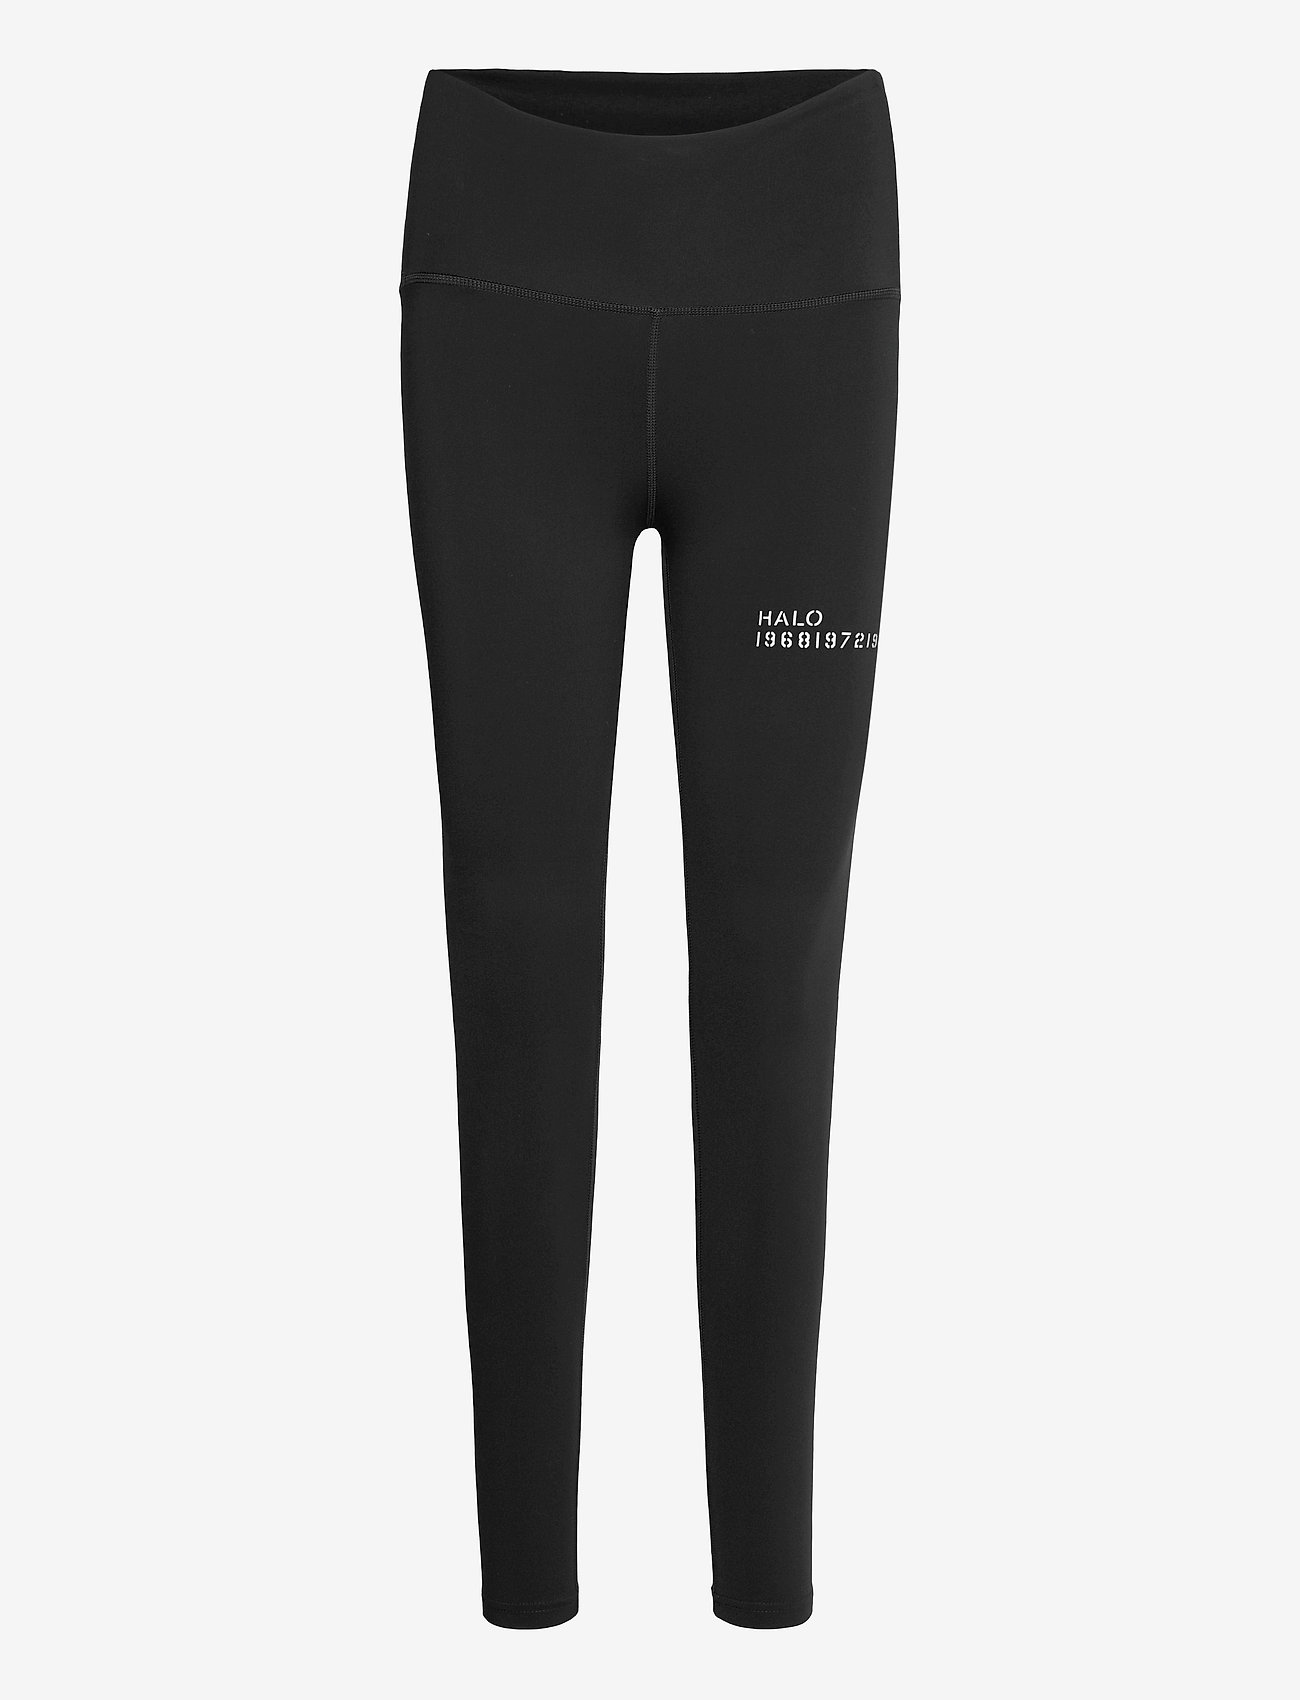 HALO - HALO WOMENS HIGHRISE TIGHTS - running & training tights - black - 0